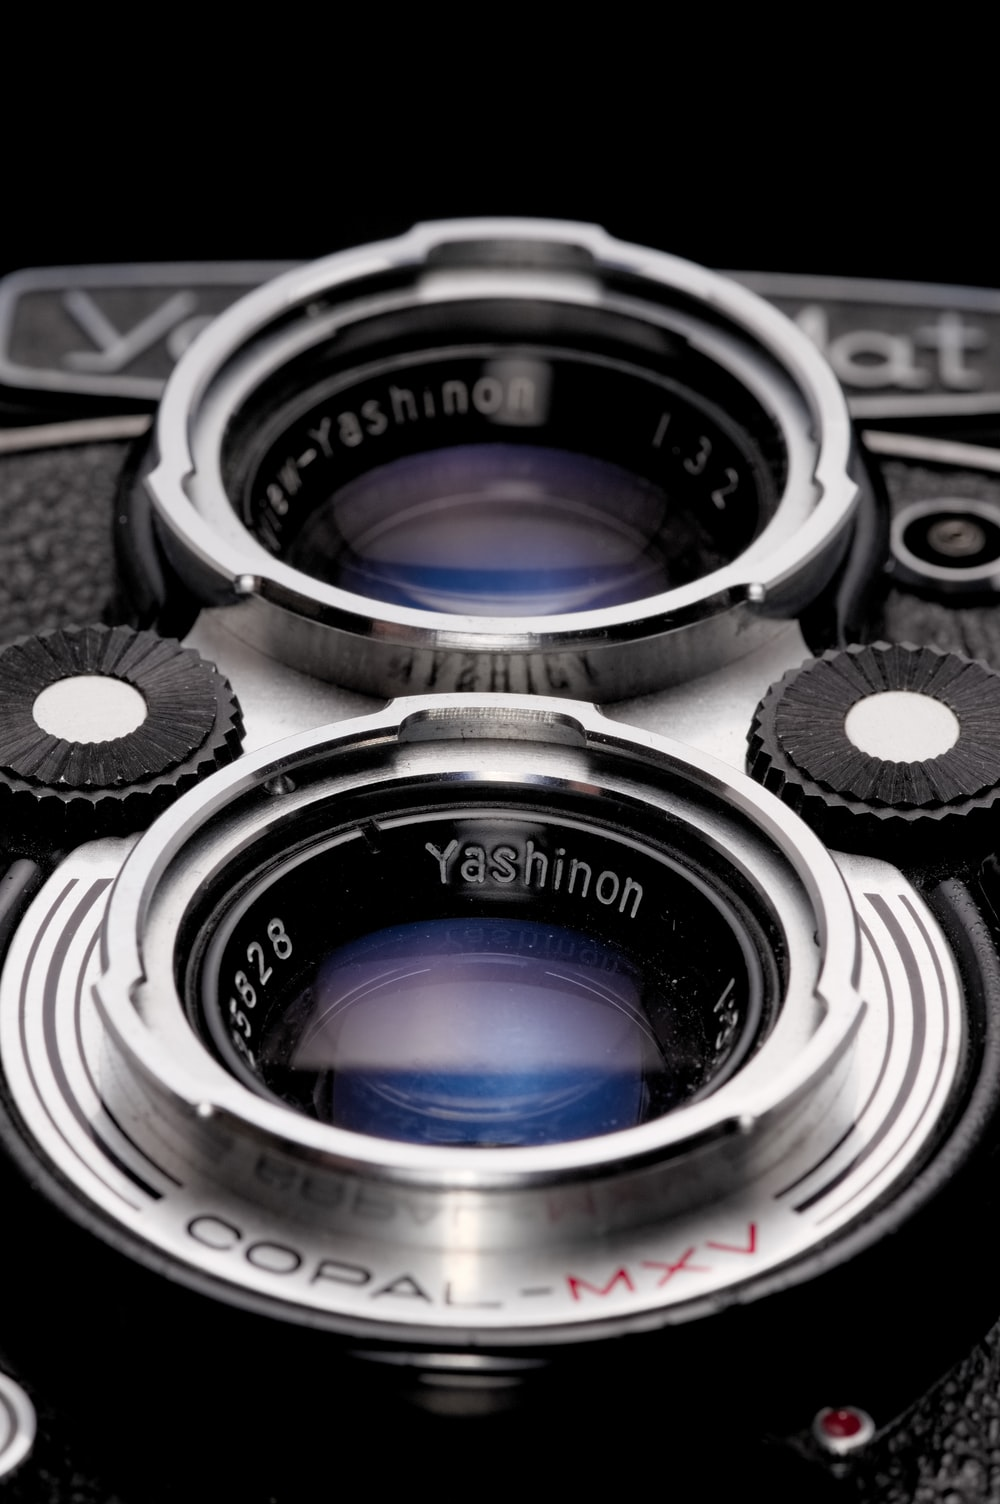 black and silver dslr camera lens